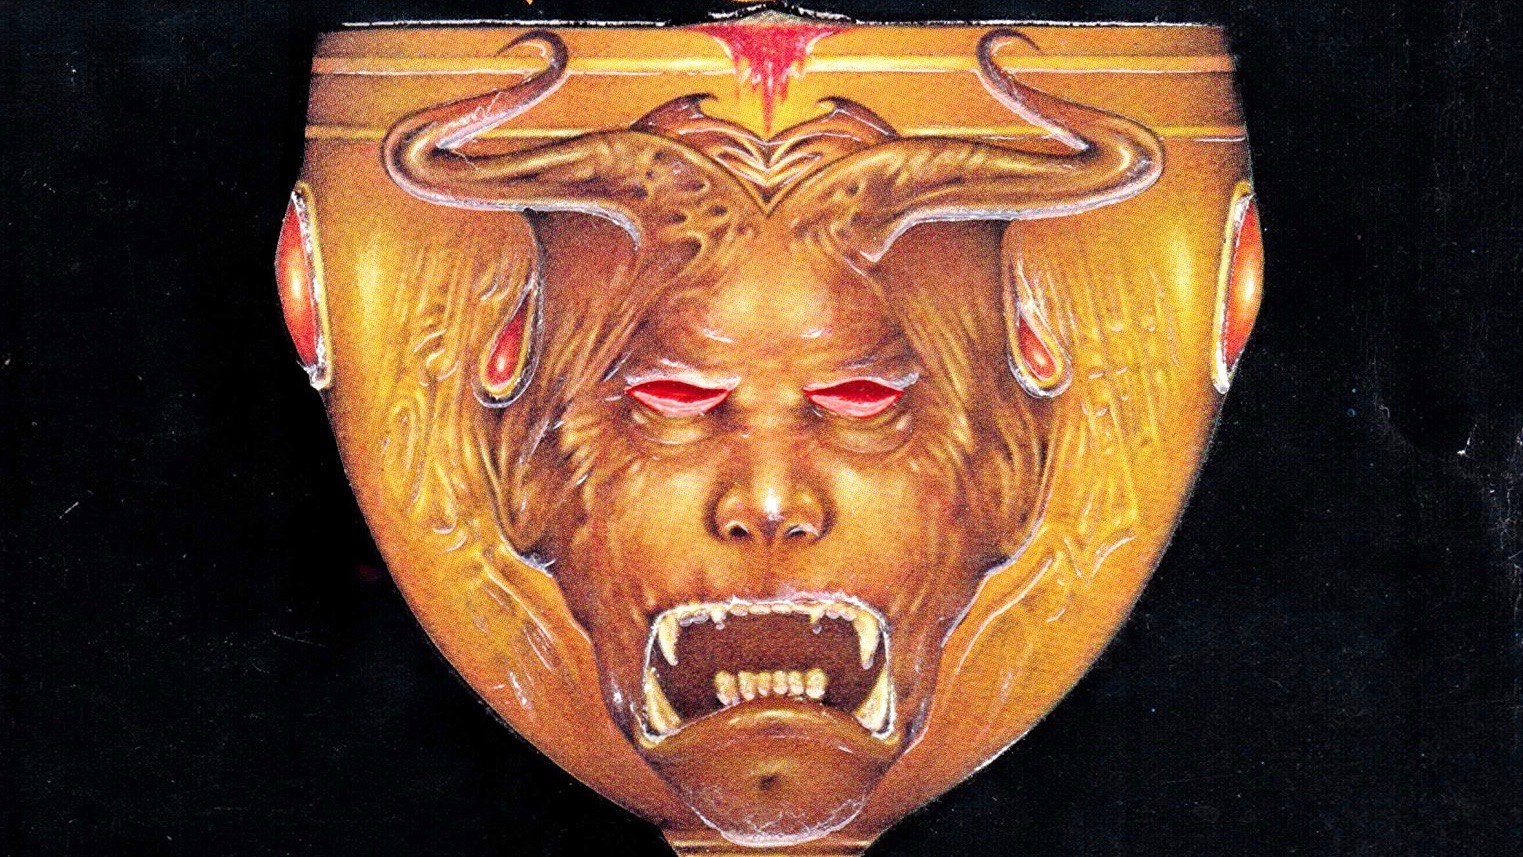 Satanic chalice with a demon's face